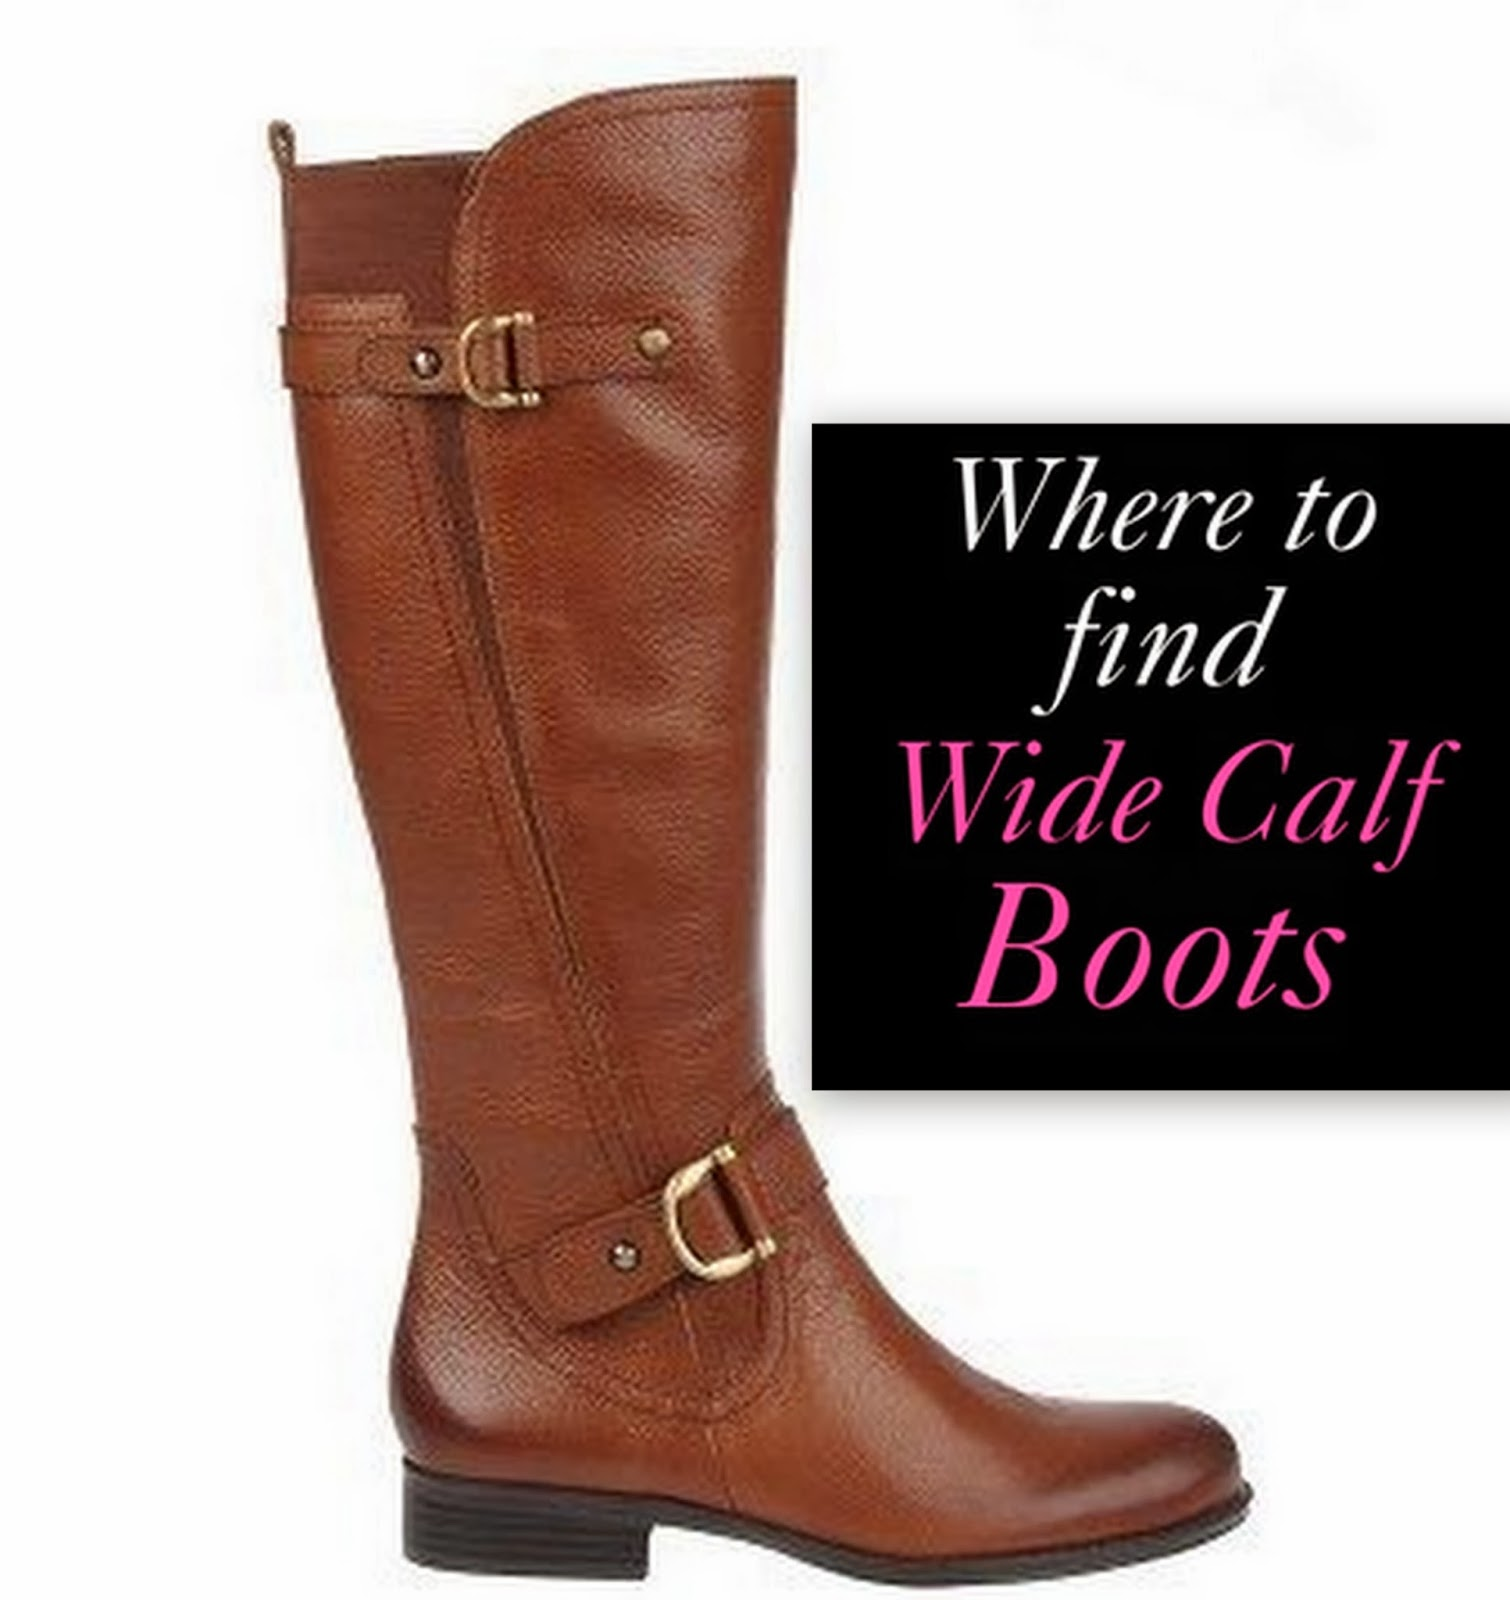 TheStyleSupreme: Where to Shop for Wide Calf Boots